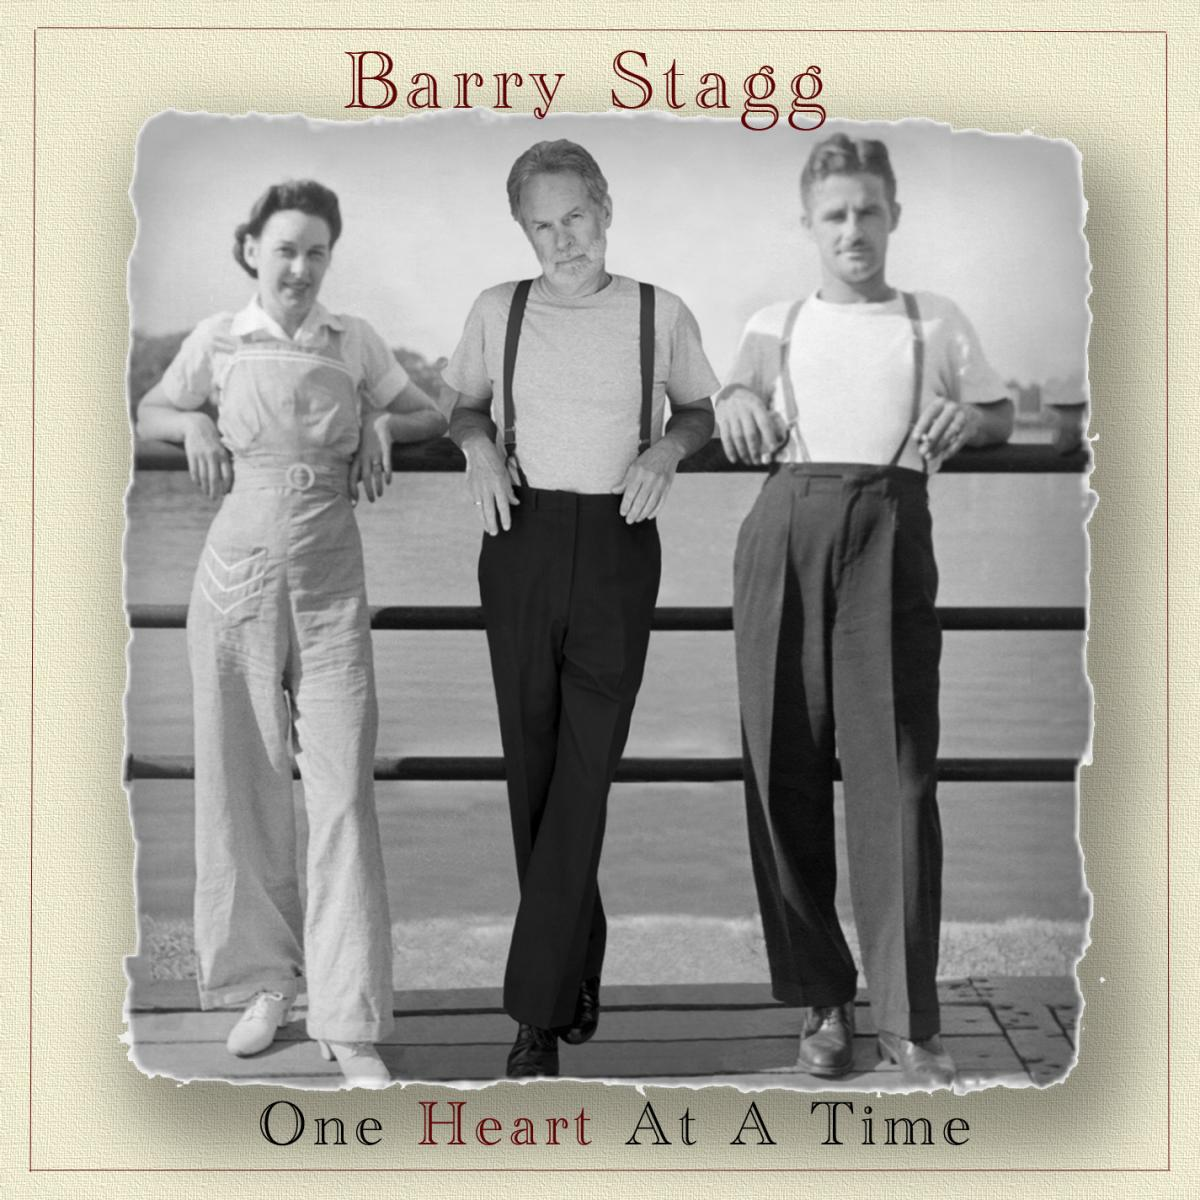 Barry Stagg Capturing 'One Heart At A Time'